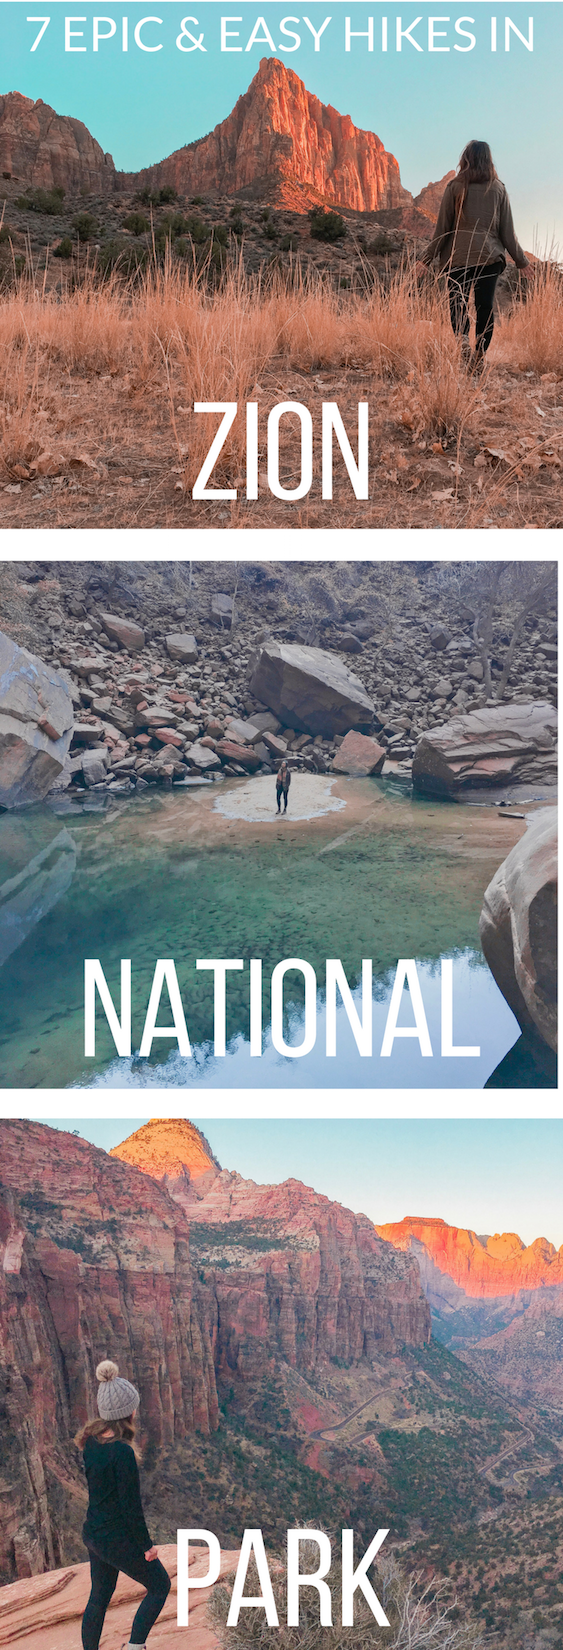 7 Easy Hikes in Zion National Park